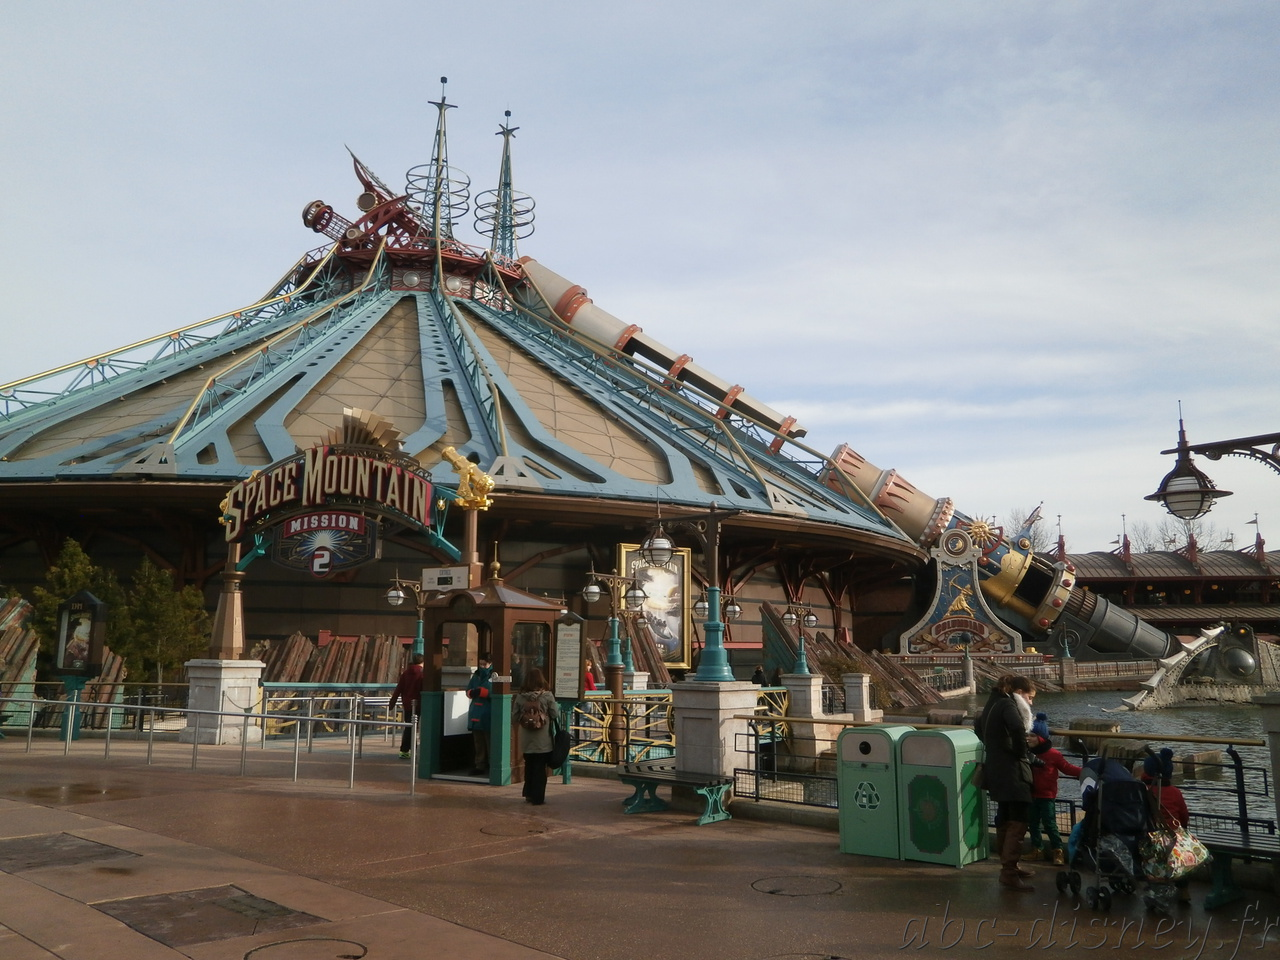 A space mountain 3